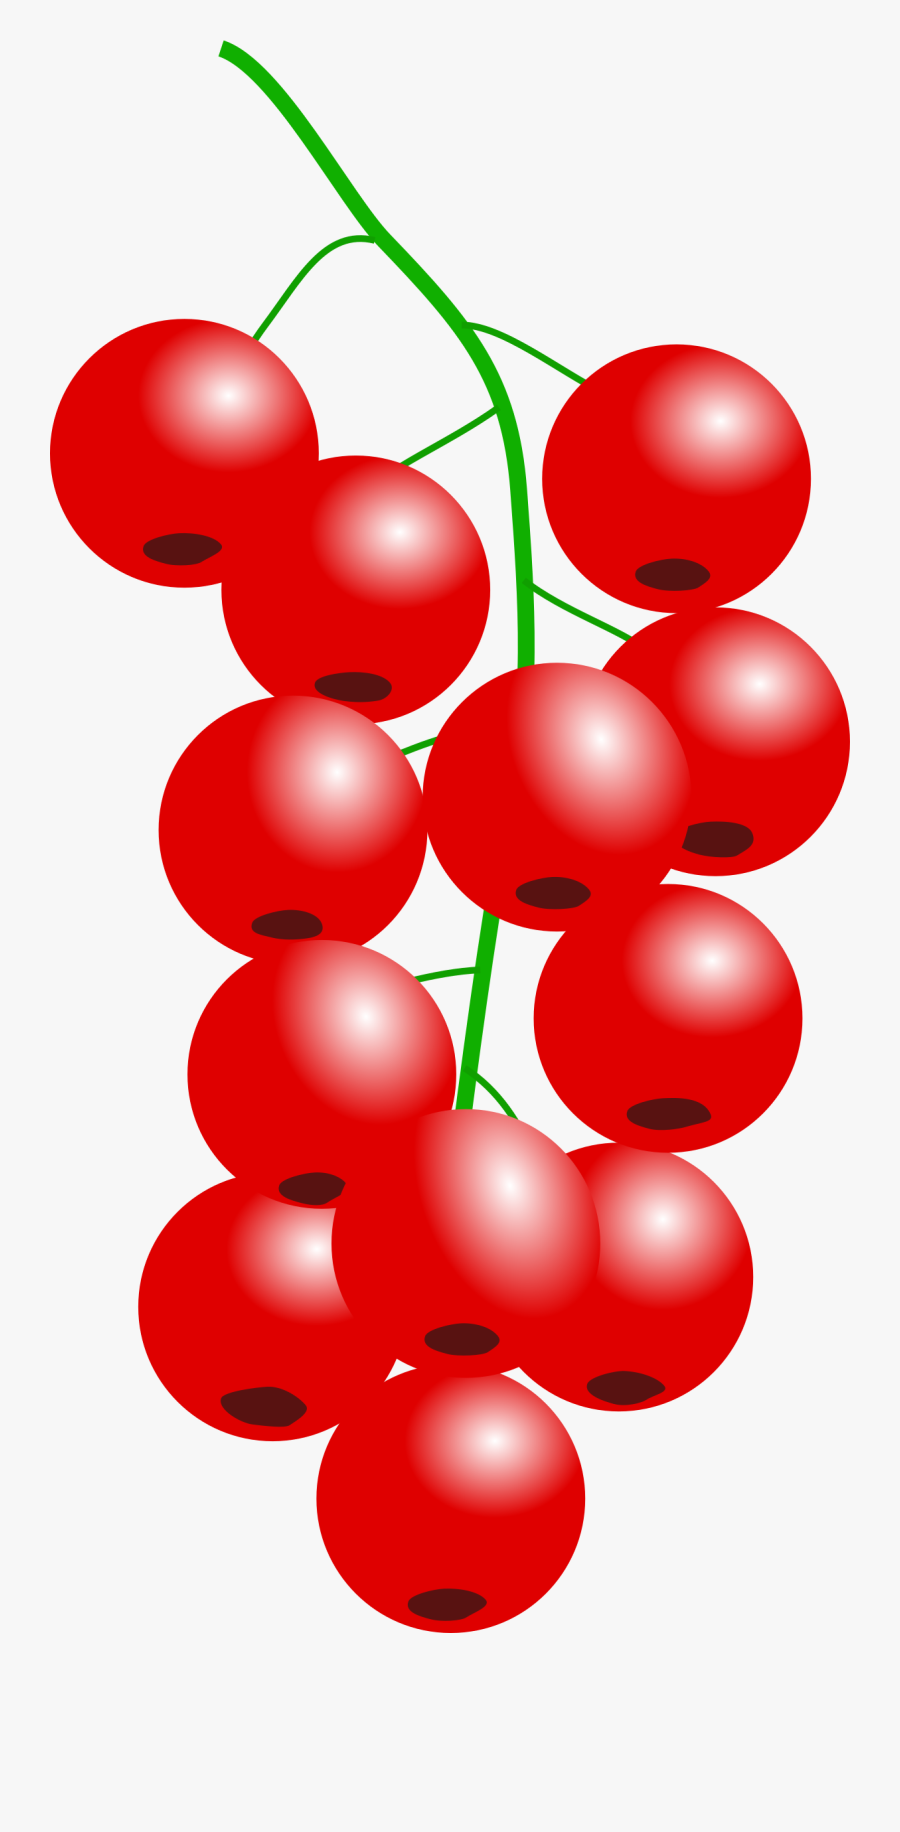 This Free Icons Png Design Of Redcurrant Png - Clipart Cranberry, Transparent Clipart